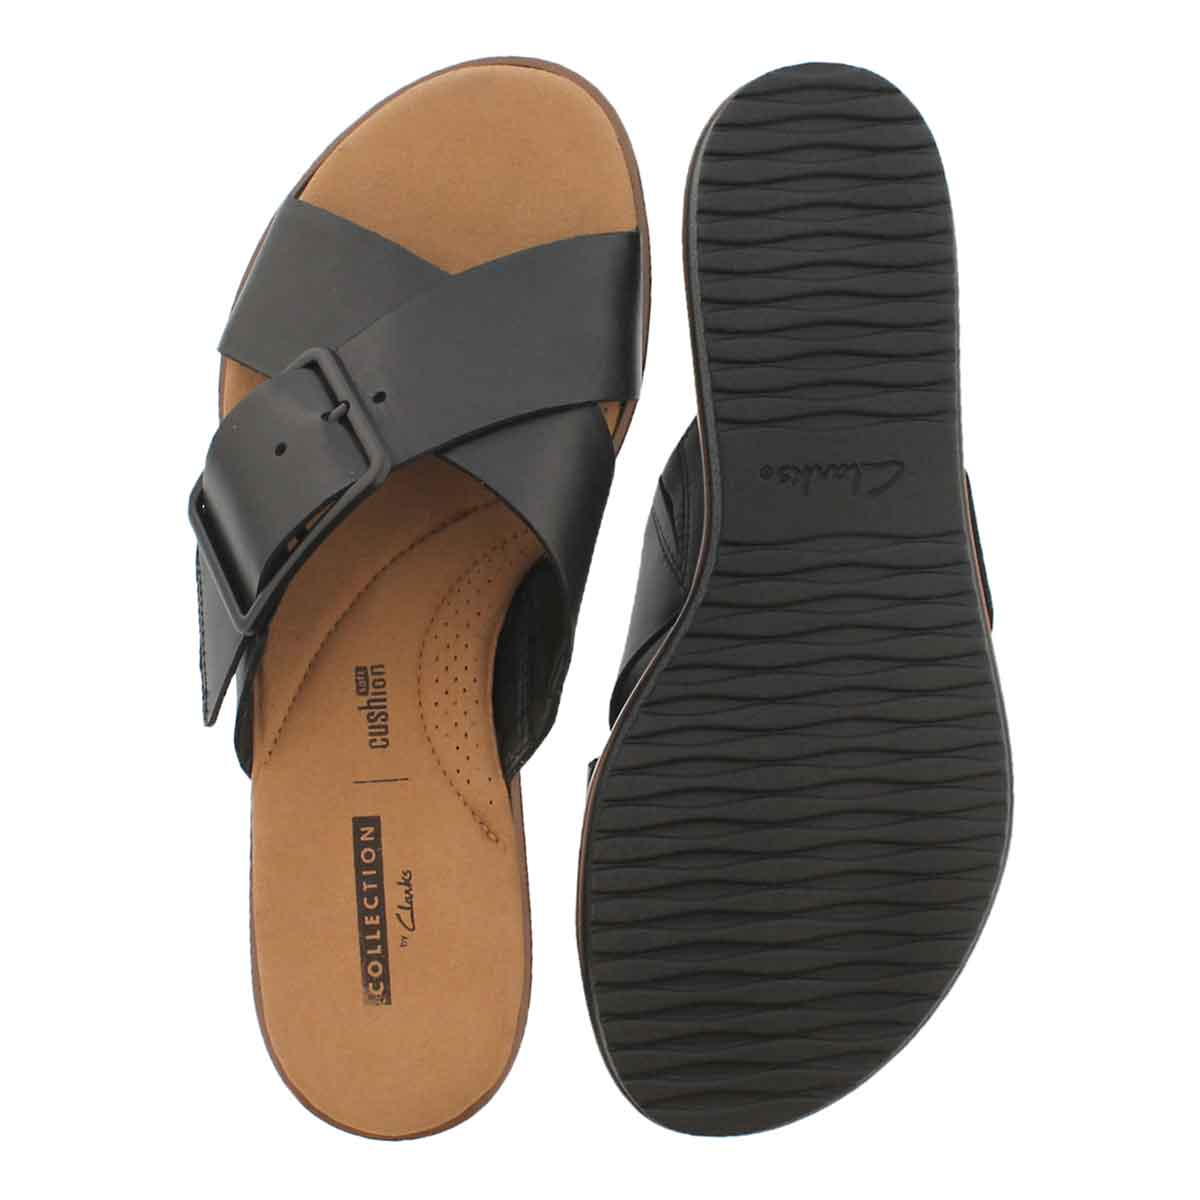 Lds Kele Heather black casual slide sndl